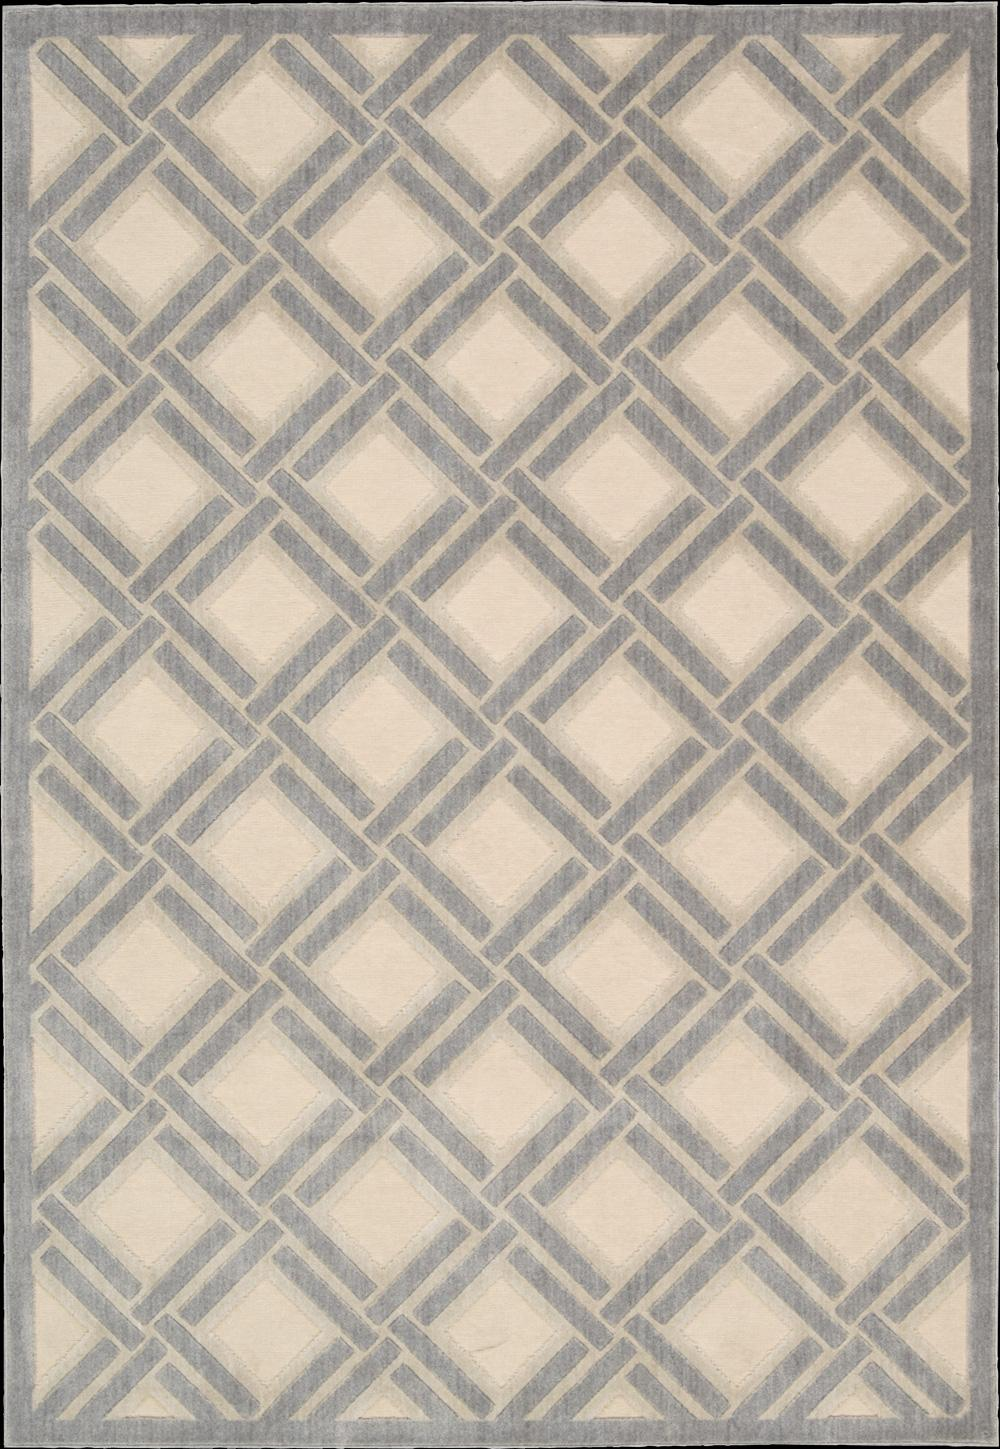 "Nourison Graphic Illusions Area Rug 2'3"" x 3'9"" - Item Number: 16064"